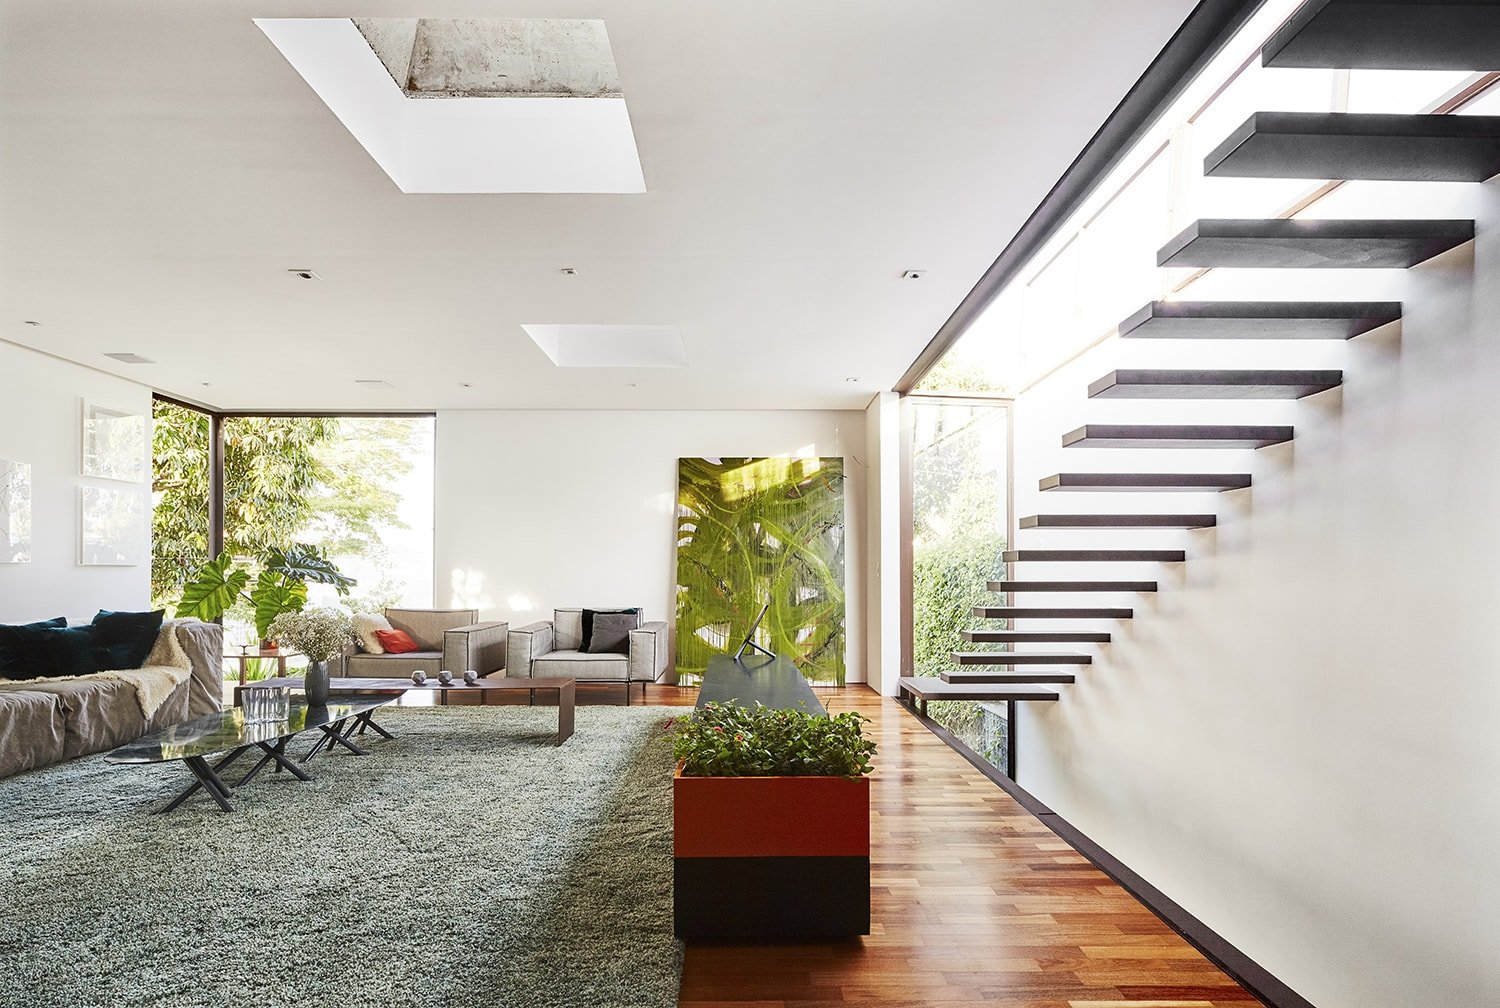 Upper floor living – insolation and ventilation controlled by specific openings Pedro Kok}